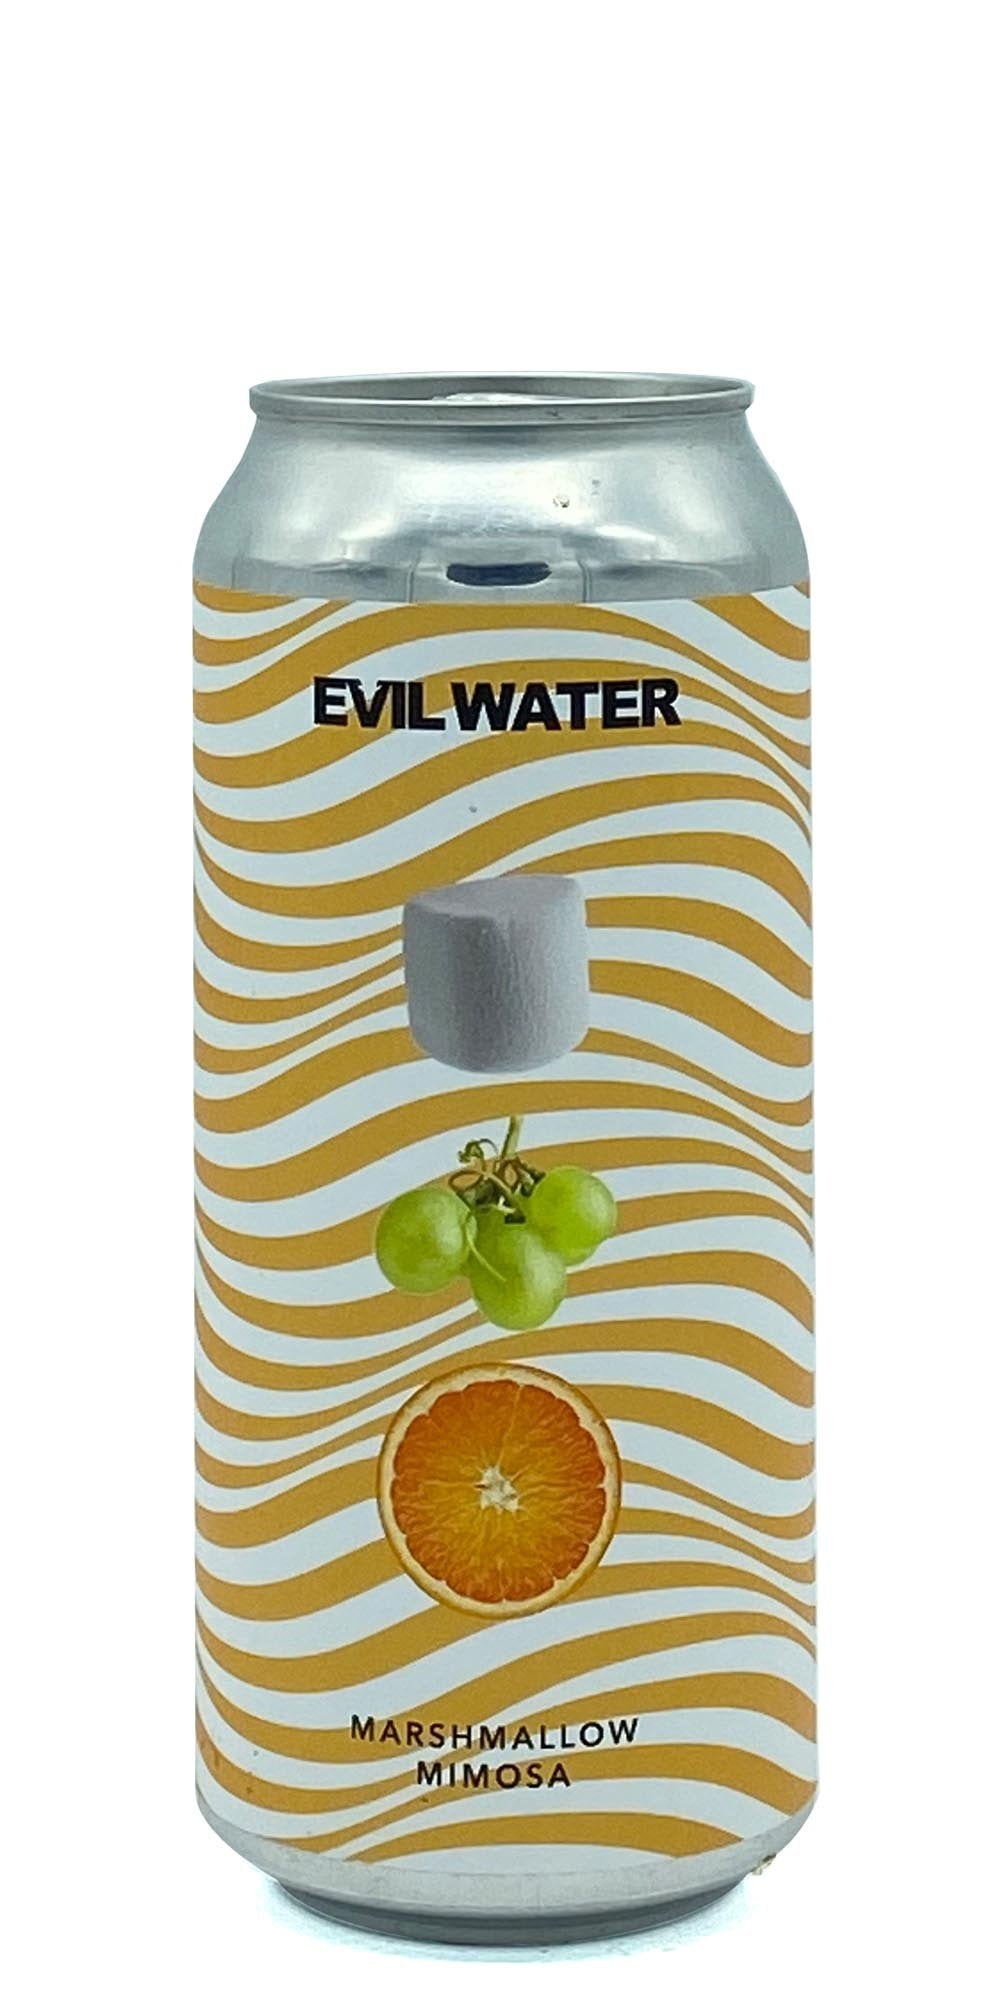 Evil Water - Marshmallow Mimosa - Drikbeer - Order Craft Beer Online